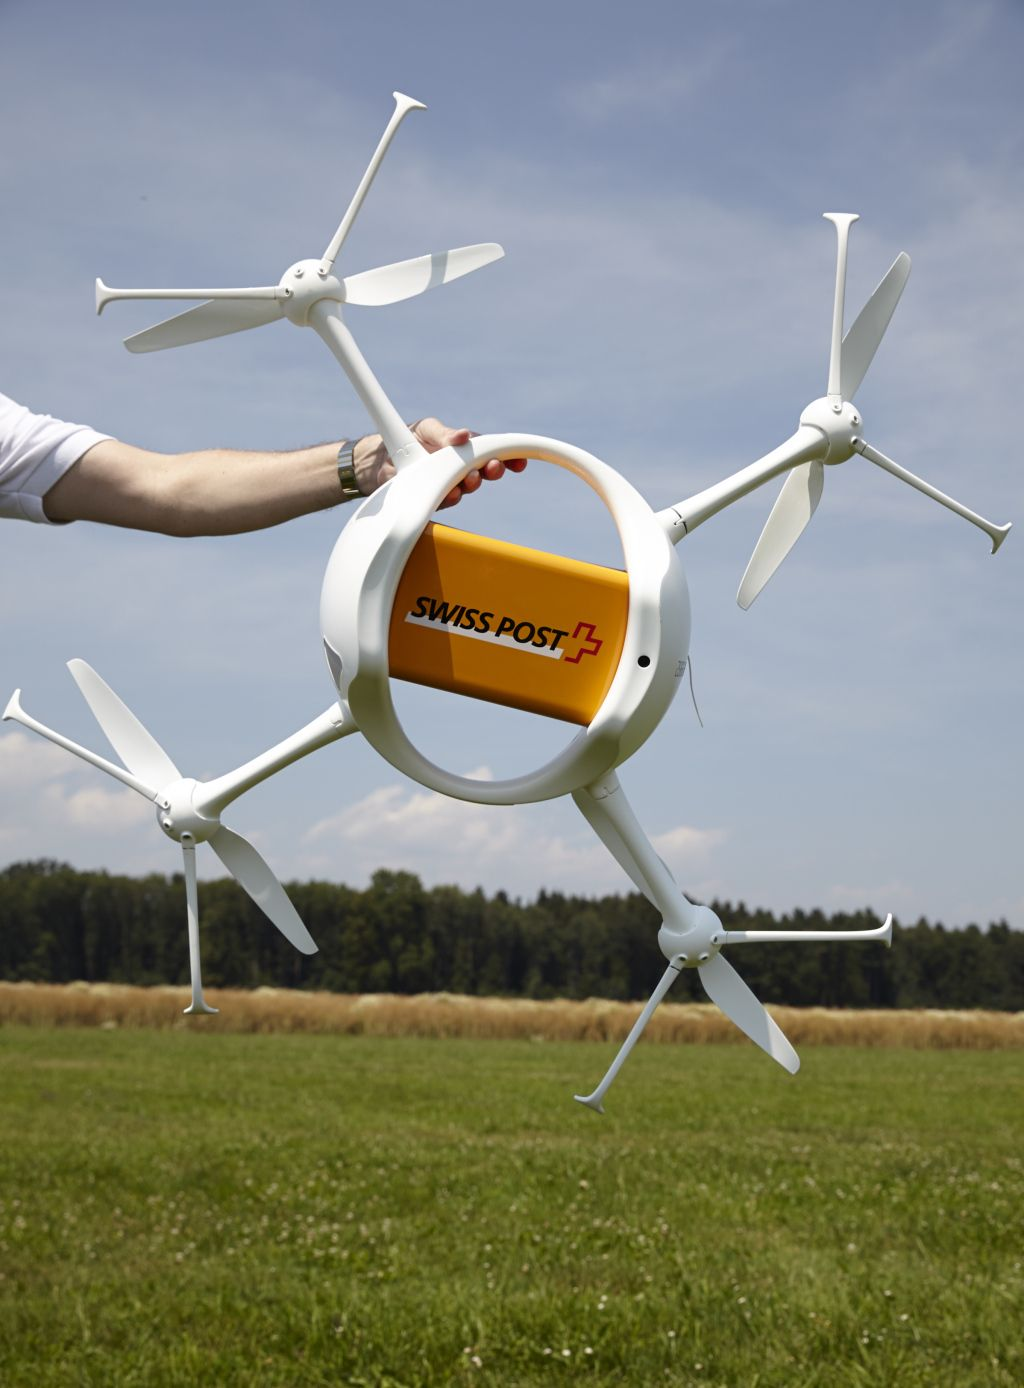 Photo of The first drone delivery system might not come from Amazon, but the Swiss government